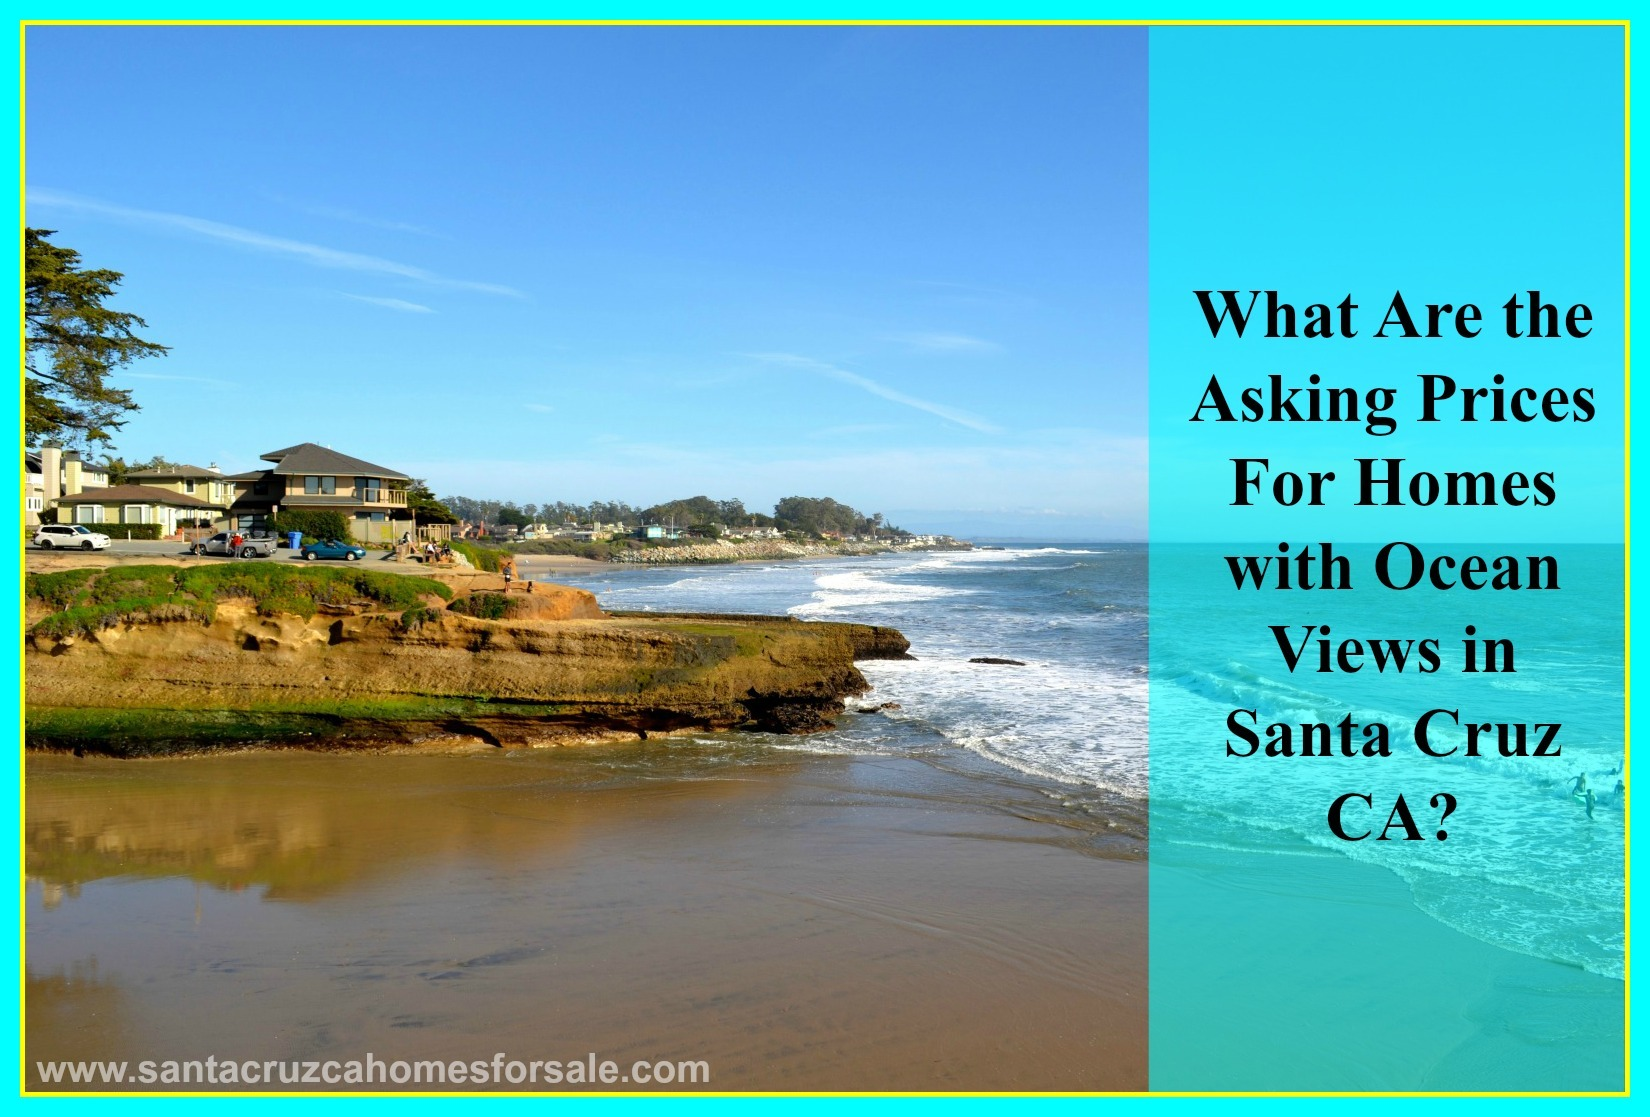 Know the latest price trend for homes with ocean views in Santa Cruz CA.